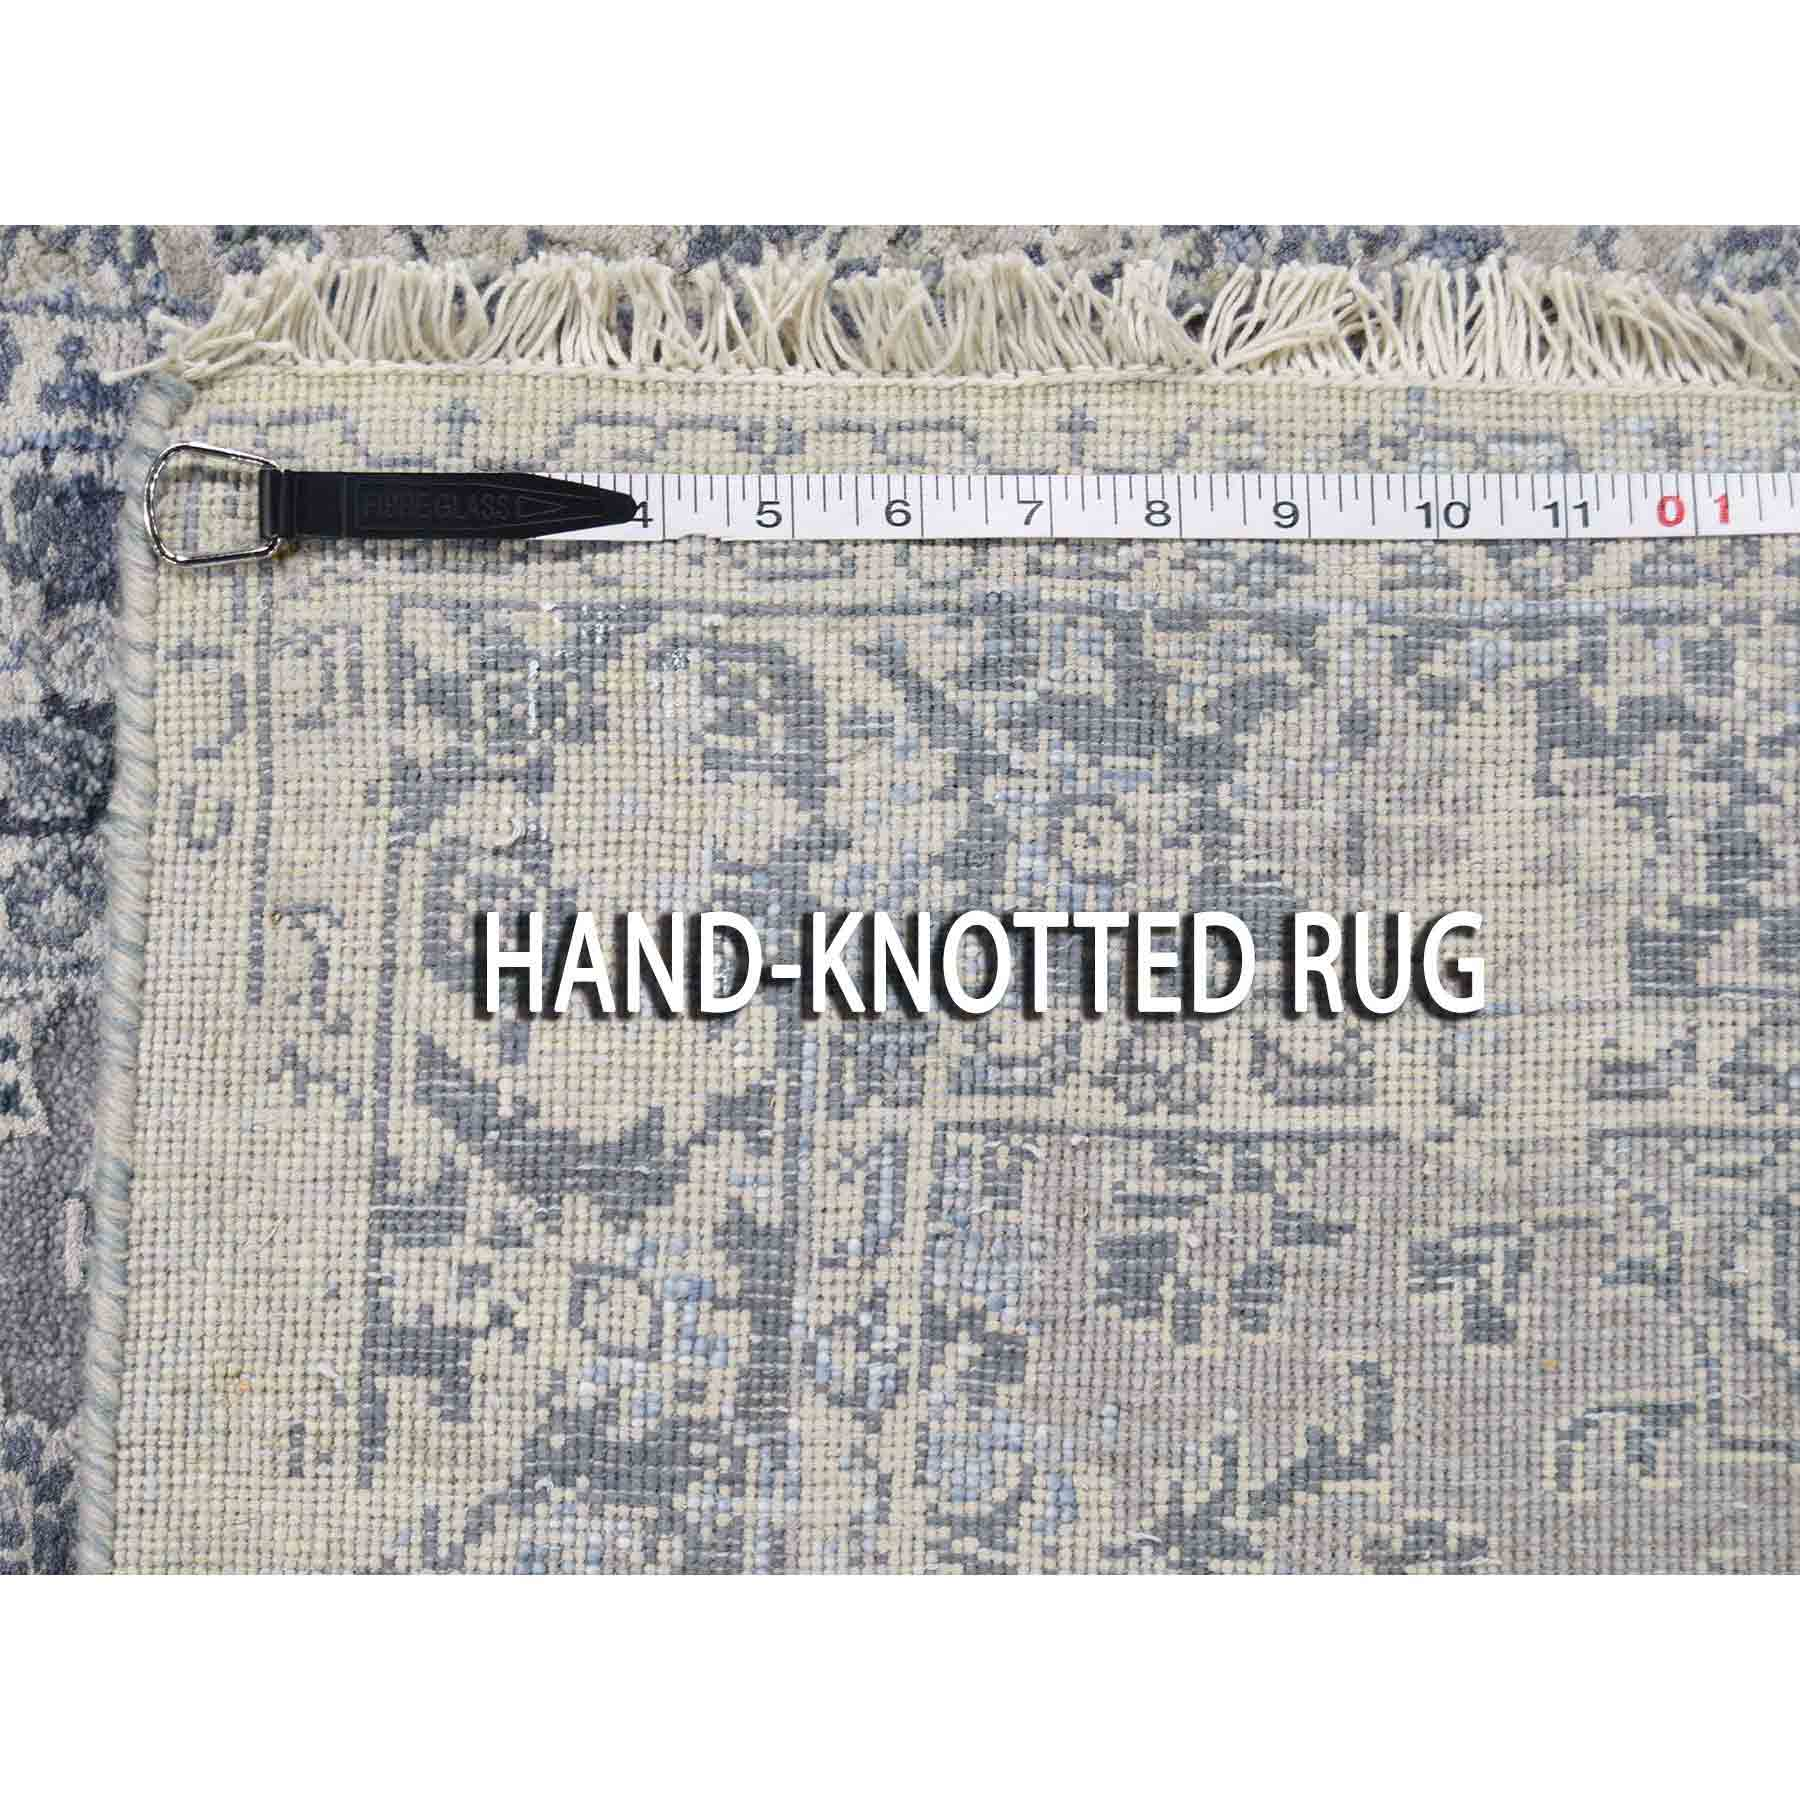 Transitional-Hand-Knotted-Rug-231625